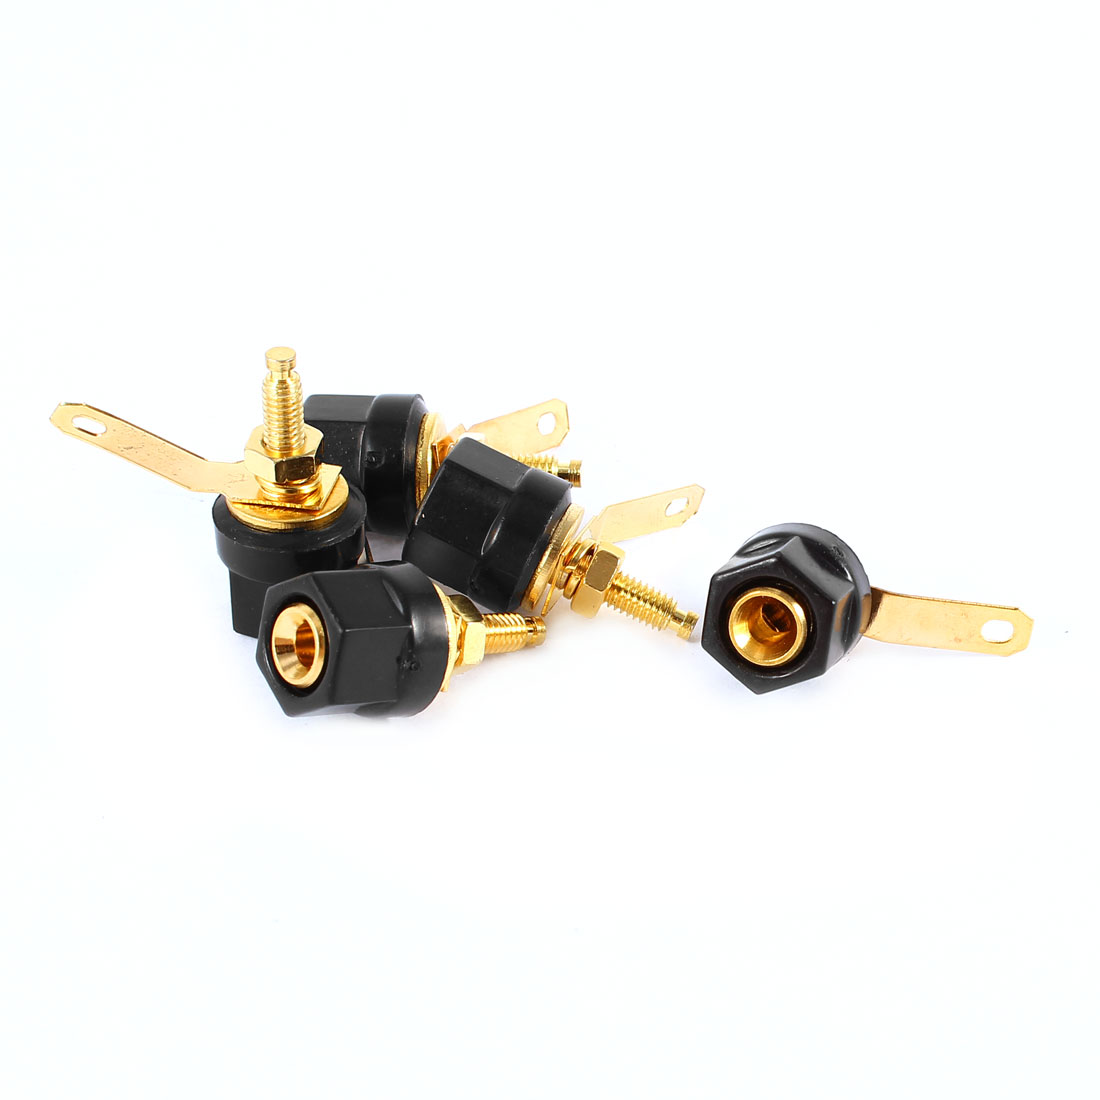 Black Hex Head Terminal 4mm Banana Plug Jack Screw Type Audio Binding Post 5 Pcs